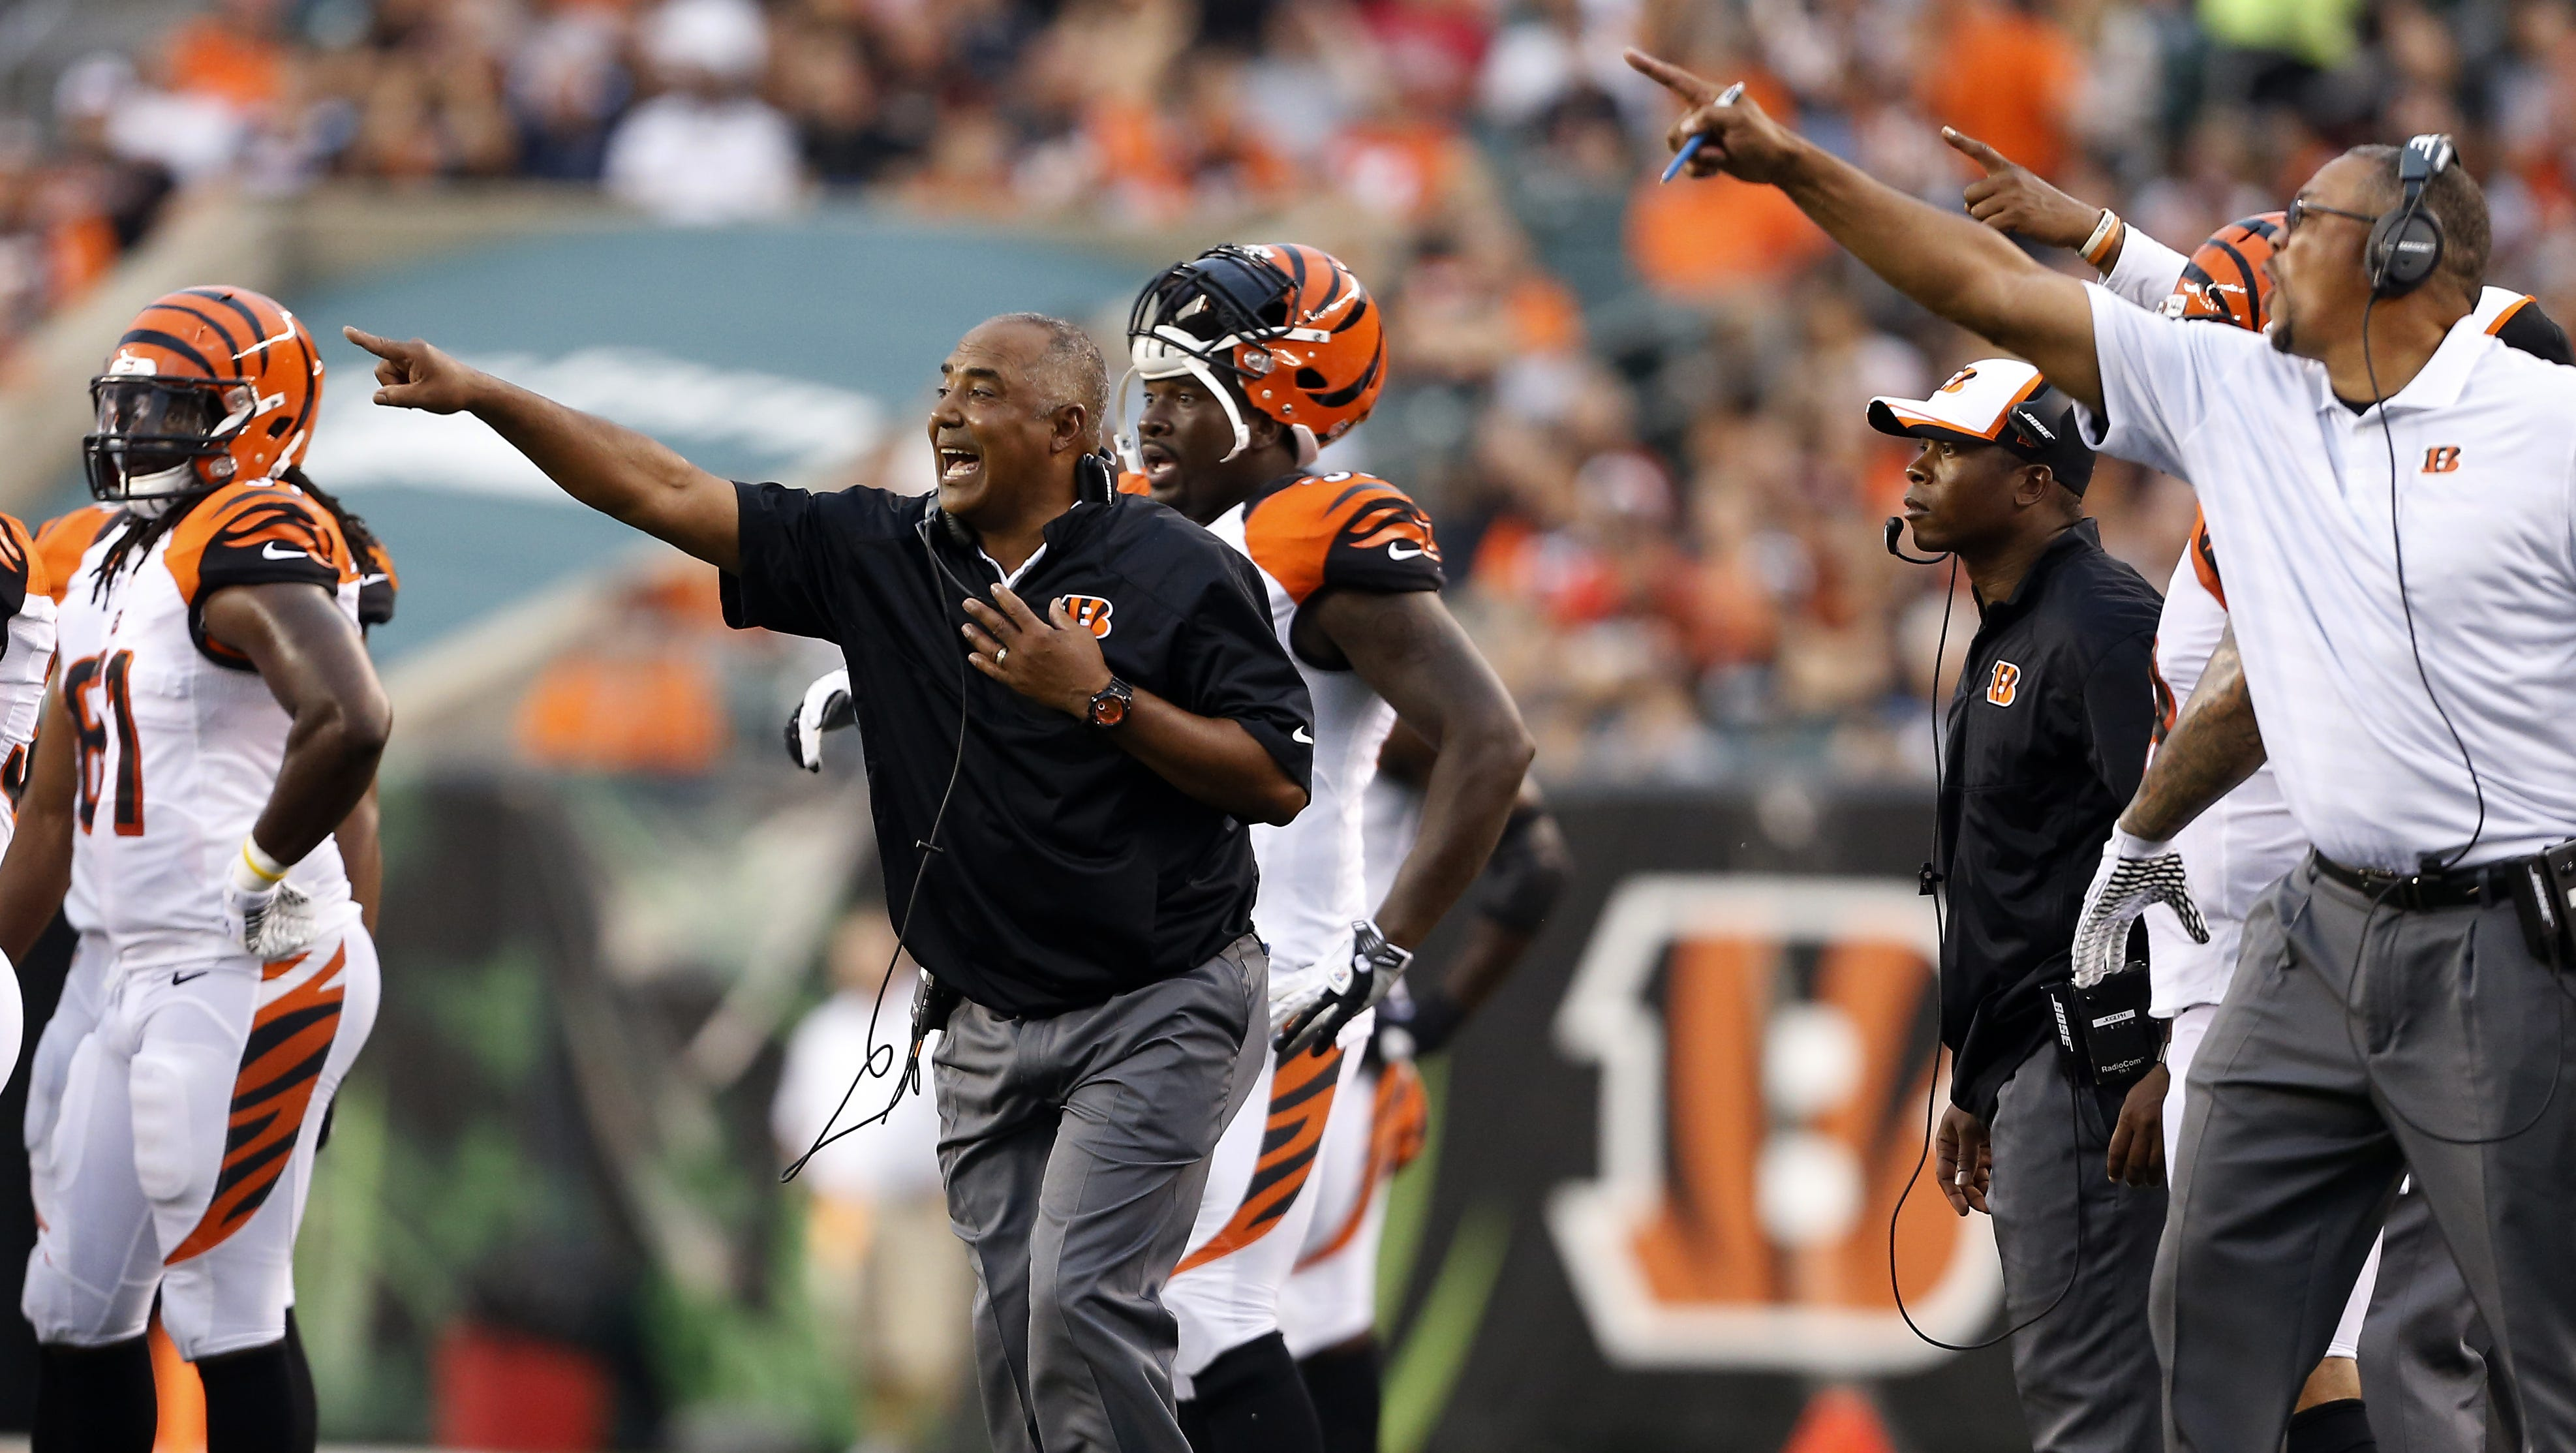 Bengals get first win of 2019 season by beating Jets ...